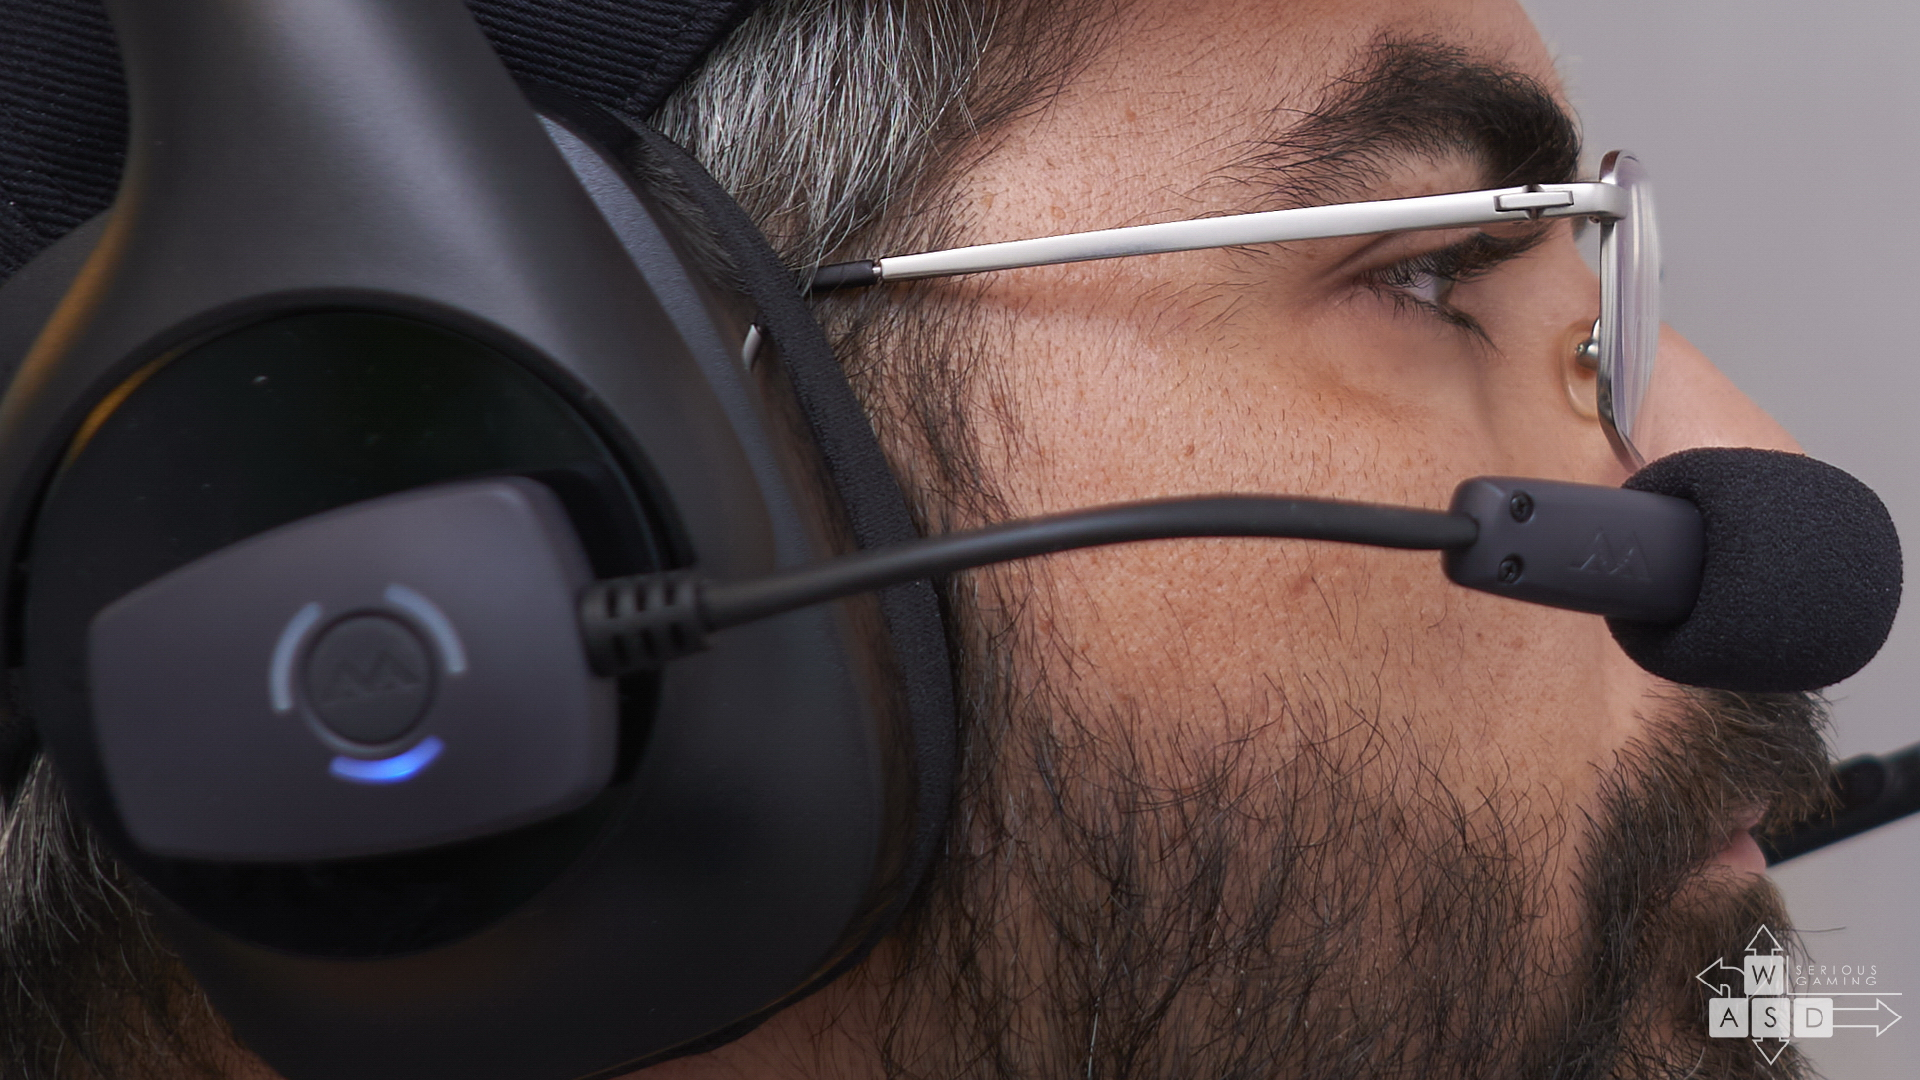 Antlion ModMic Wireless review | WASD